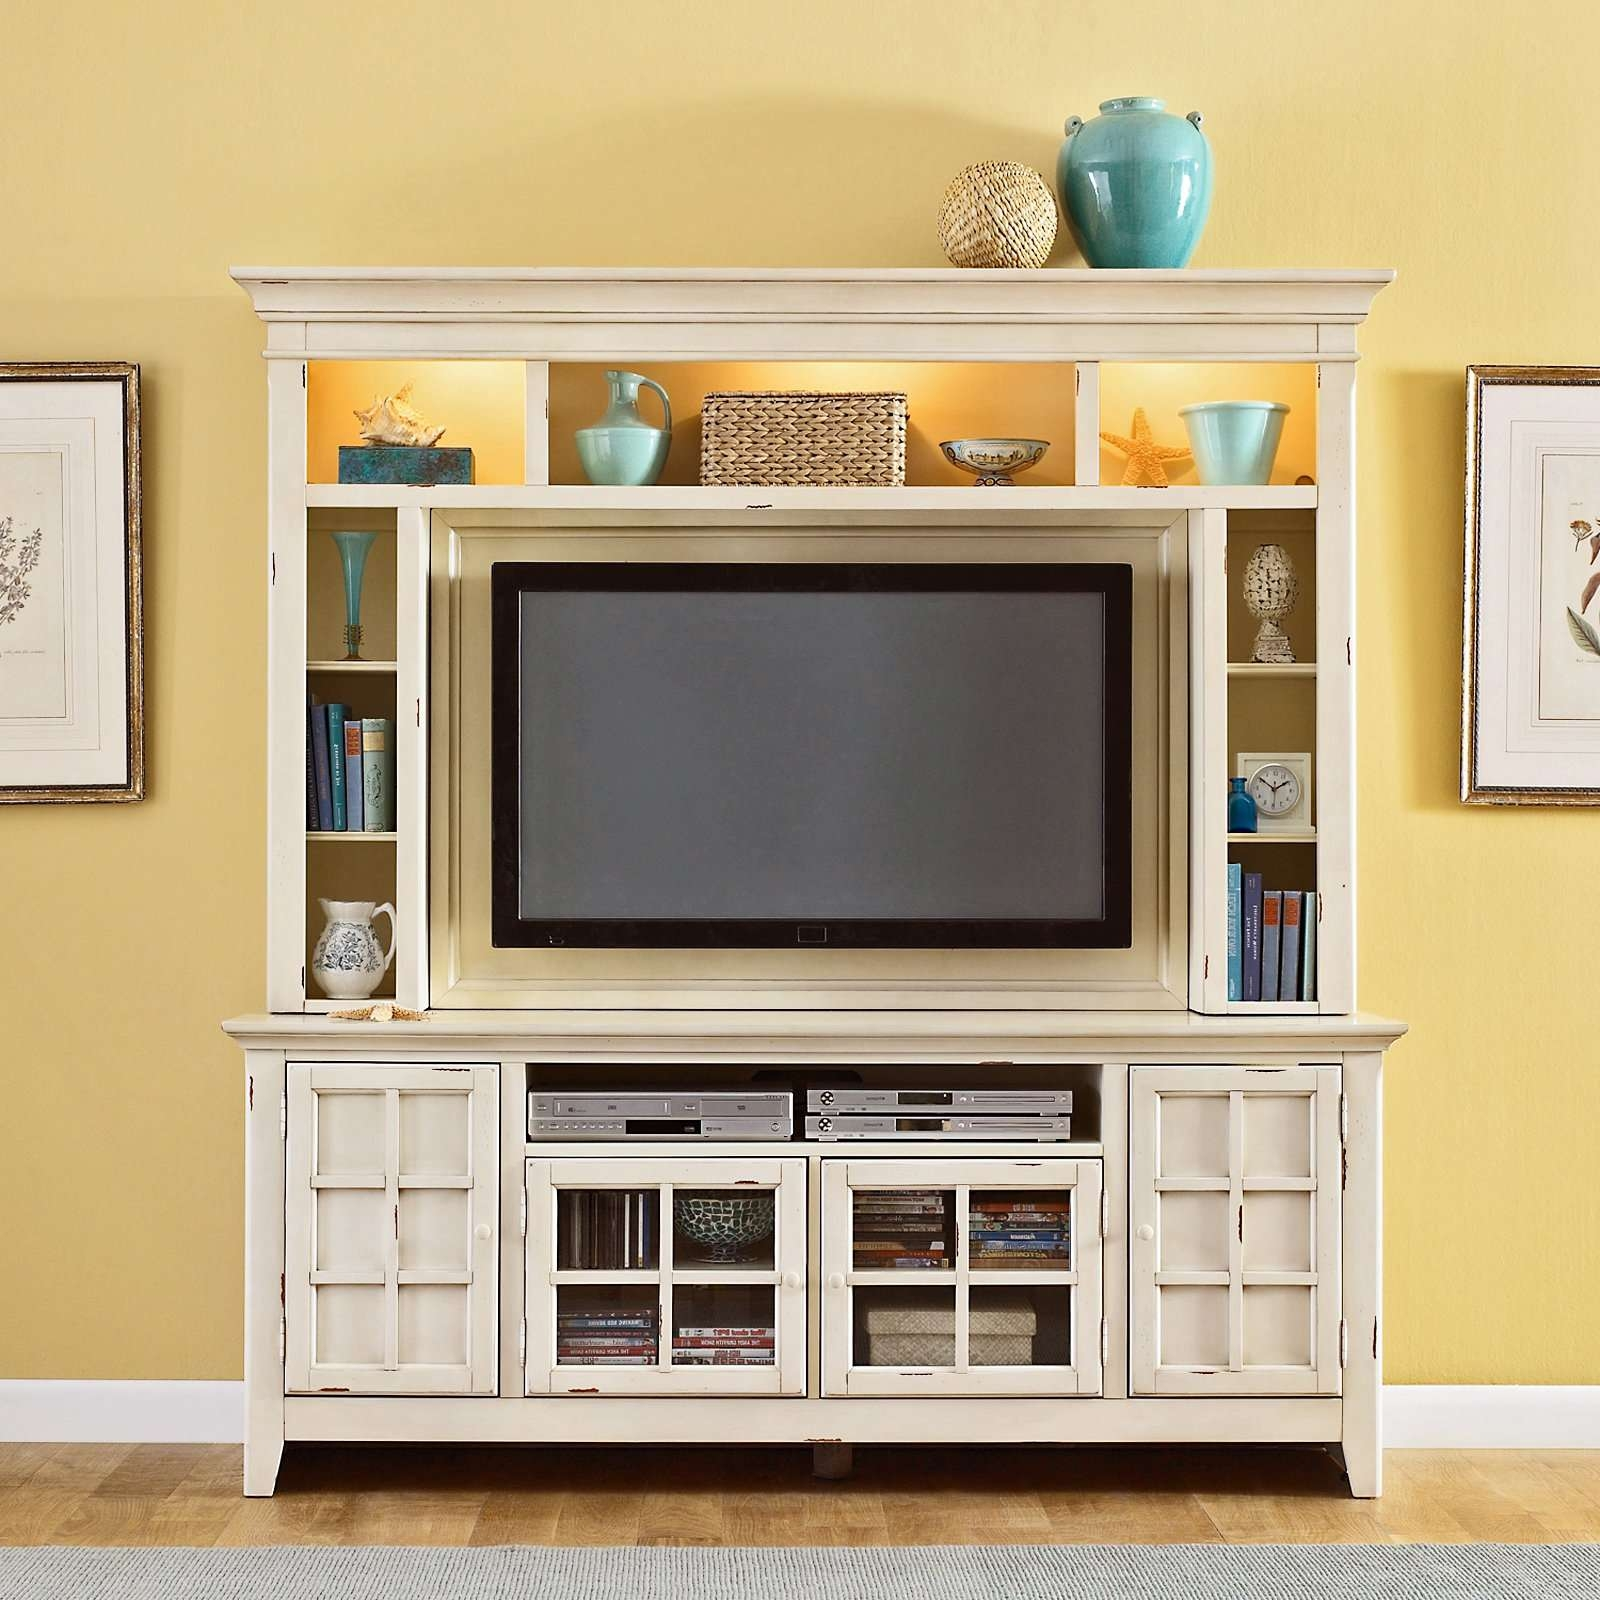 Compact White Painted Oak Wood Media Cabinet With Lighted Shelves Pertaining To Oak Tv Stands With Glass Doors (View 4 of 15)